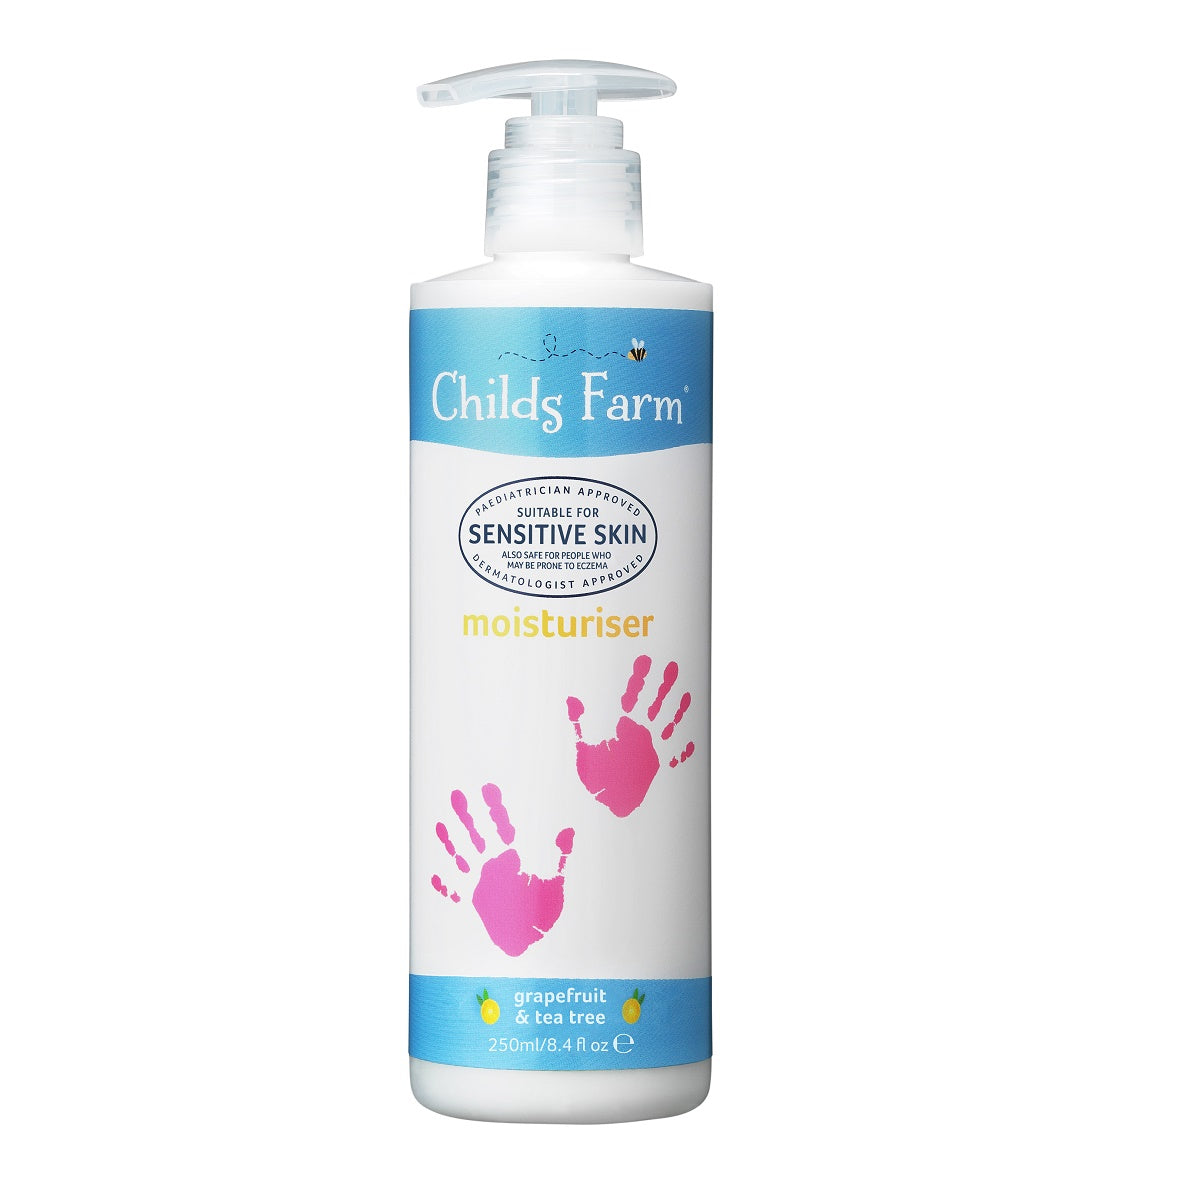 Childs Farm Moisturiser Grapefruit & Organic Tea Tree Oil